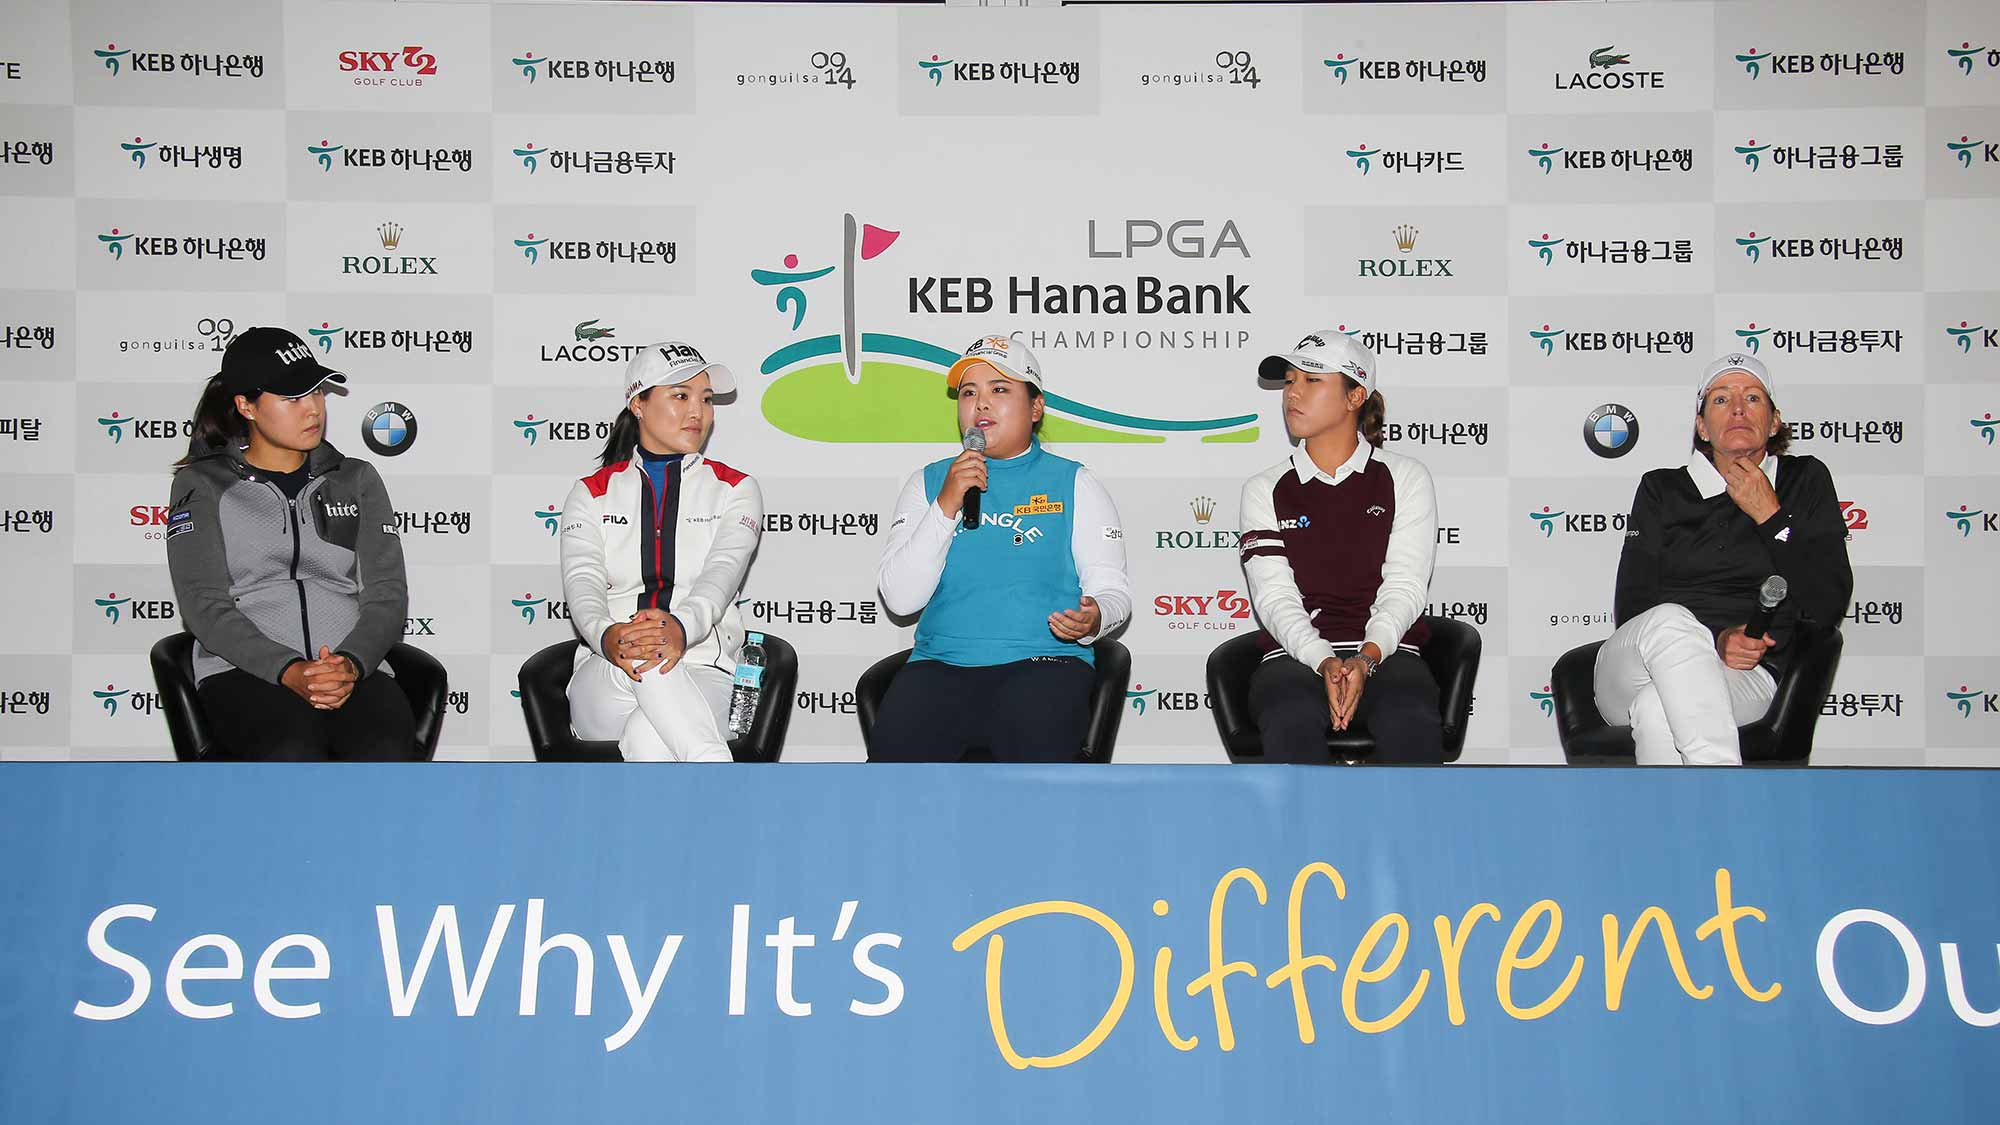 (From Left To Right) In Gee Chun, So Yeon Ryu, Inbee Park, Lydia Ko and Juli Inkster Address The Media During A Pre-Tournament Press Conference at LPGA KEB Hana Bank Championship